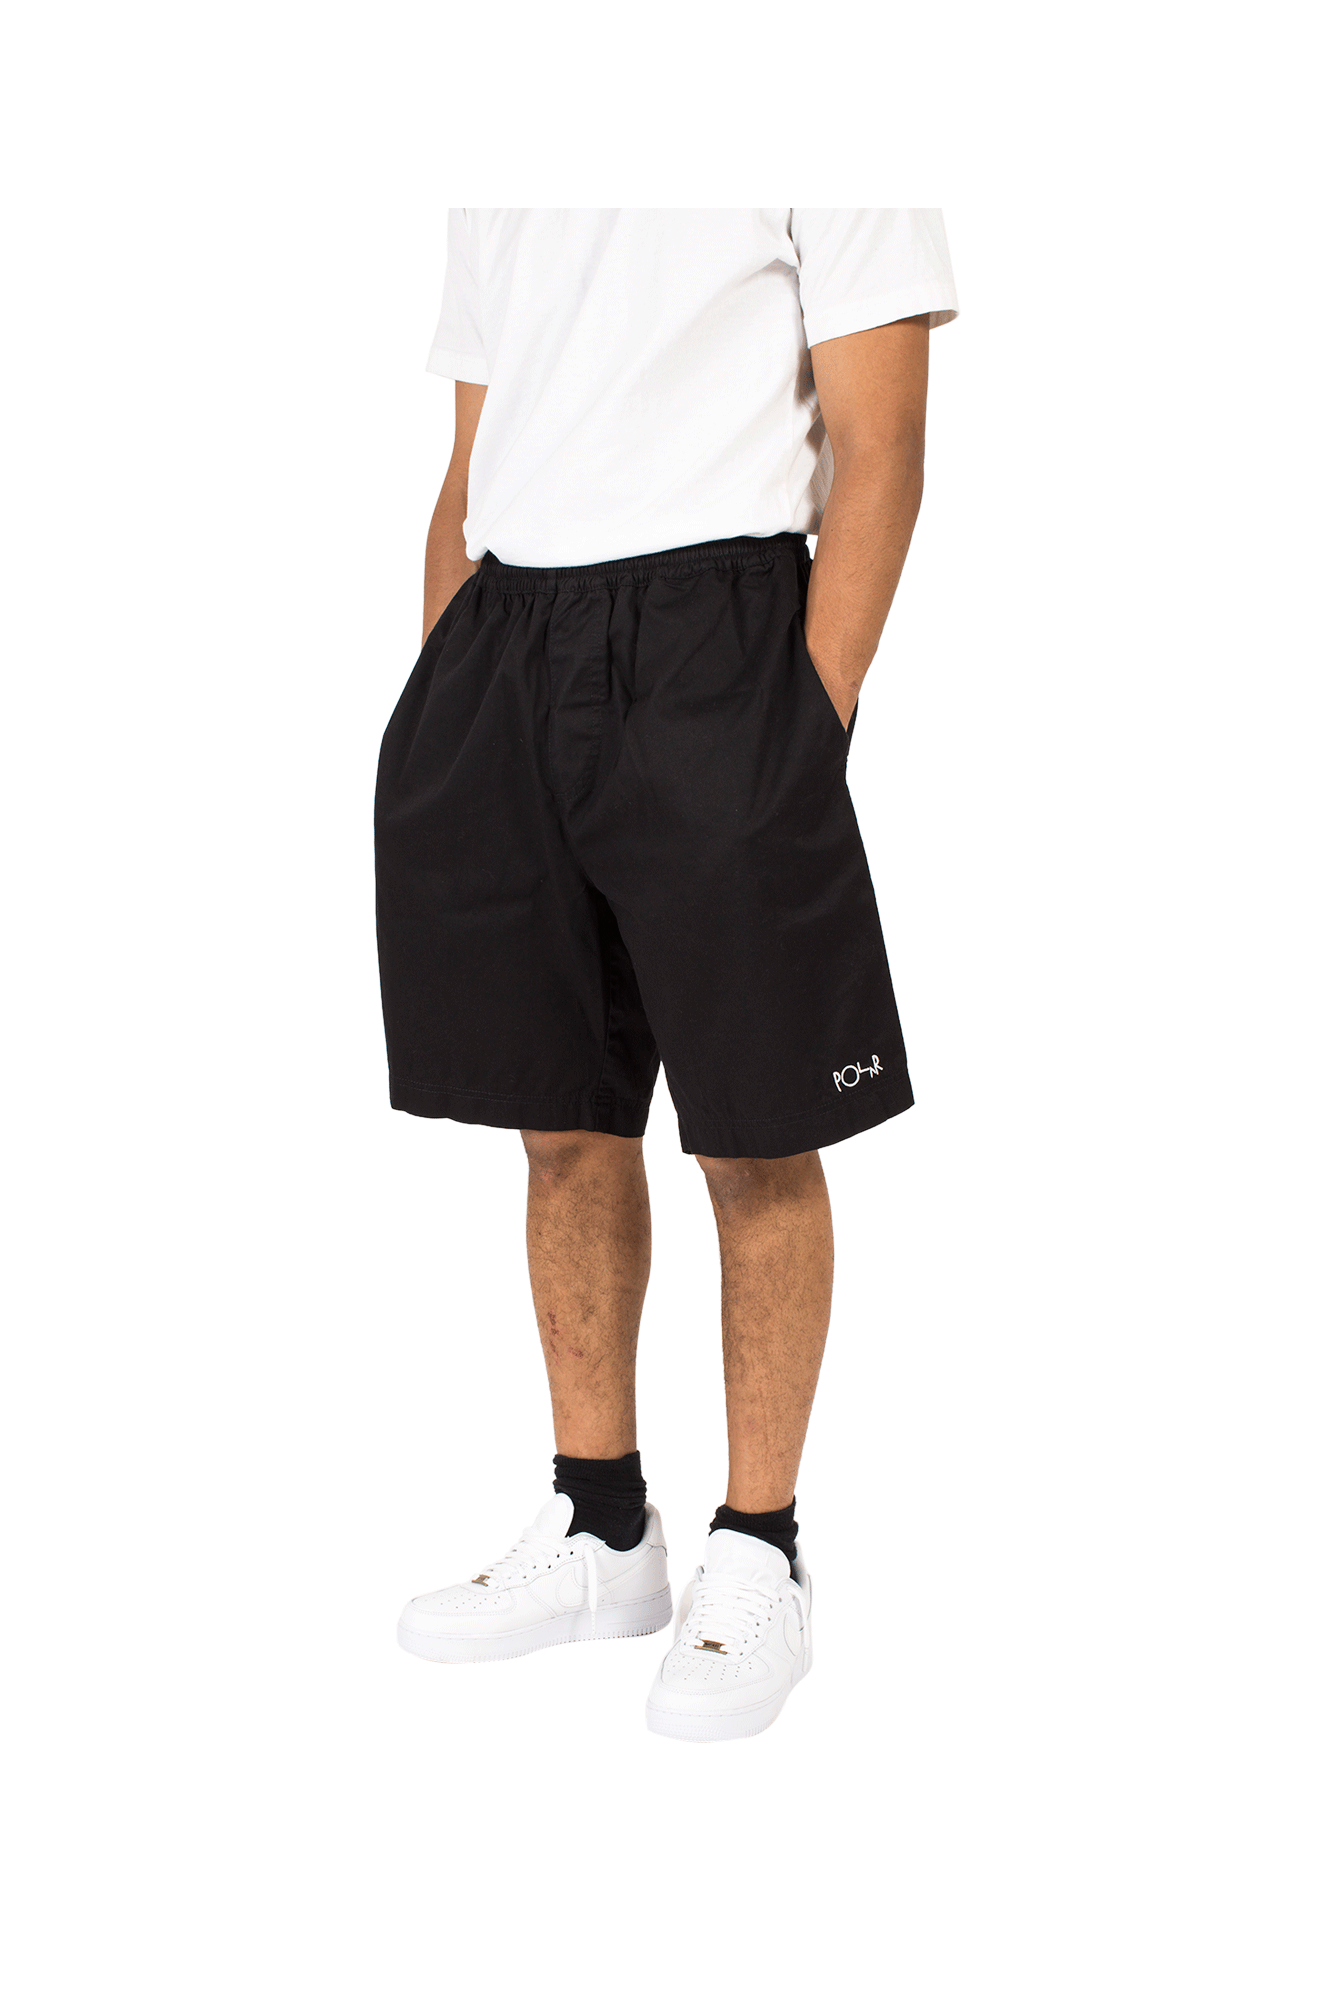 Shorts Polar Surf Short Black - One Block Down